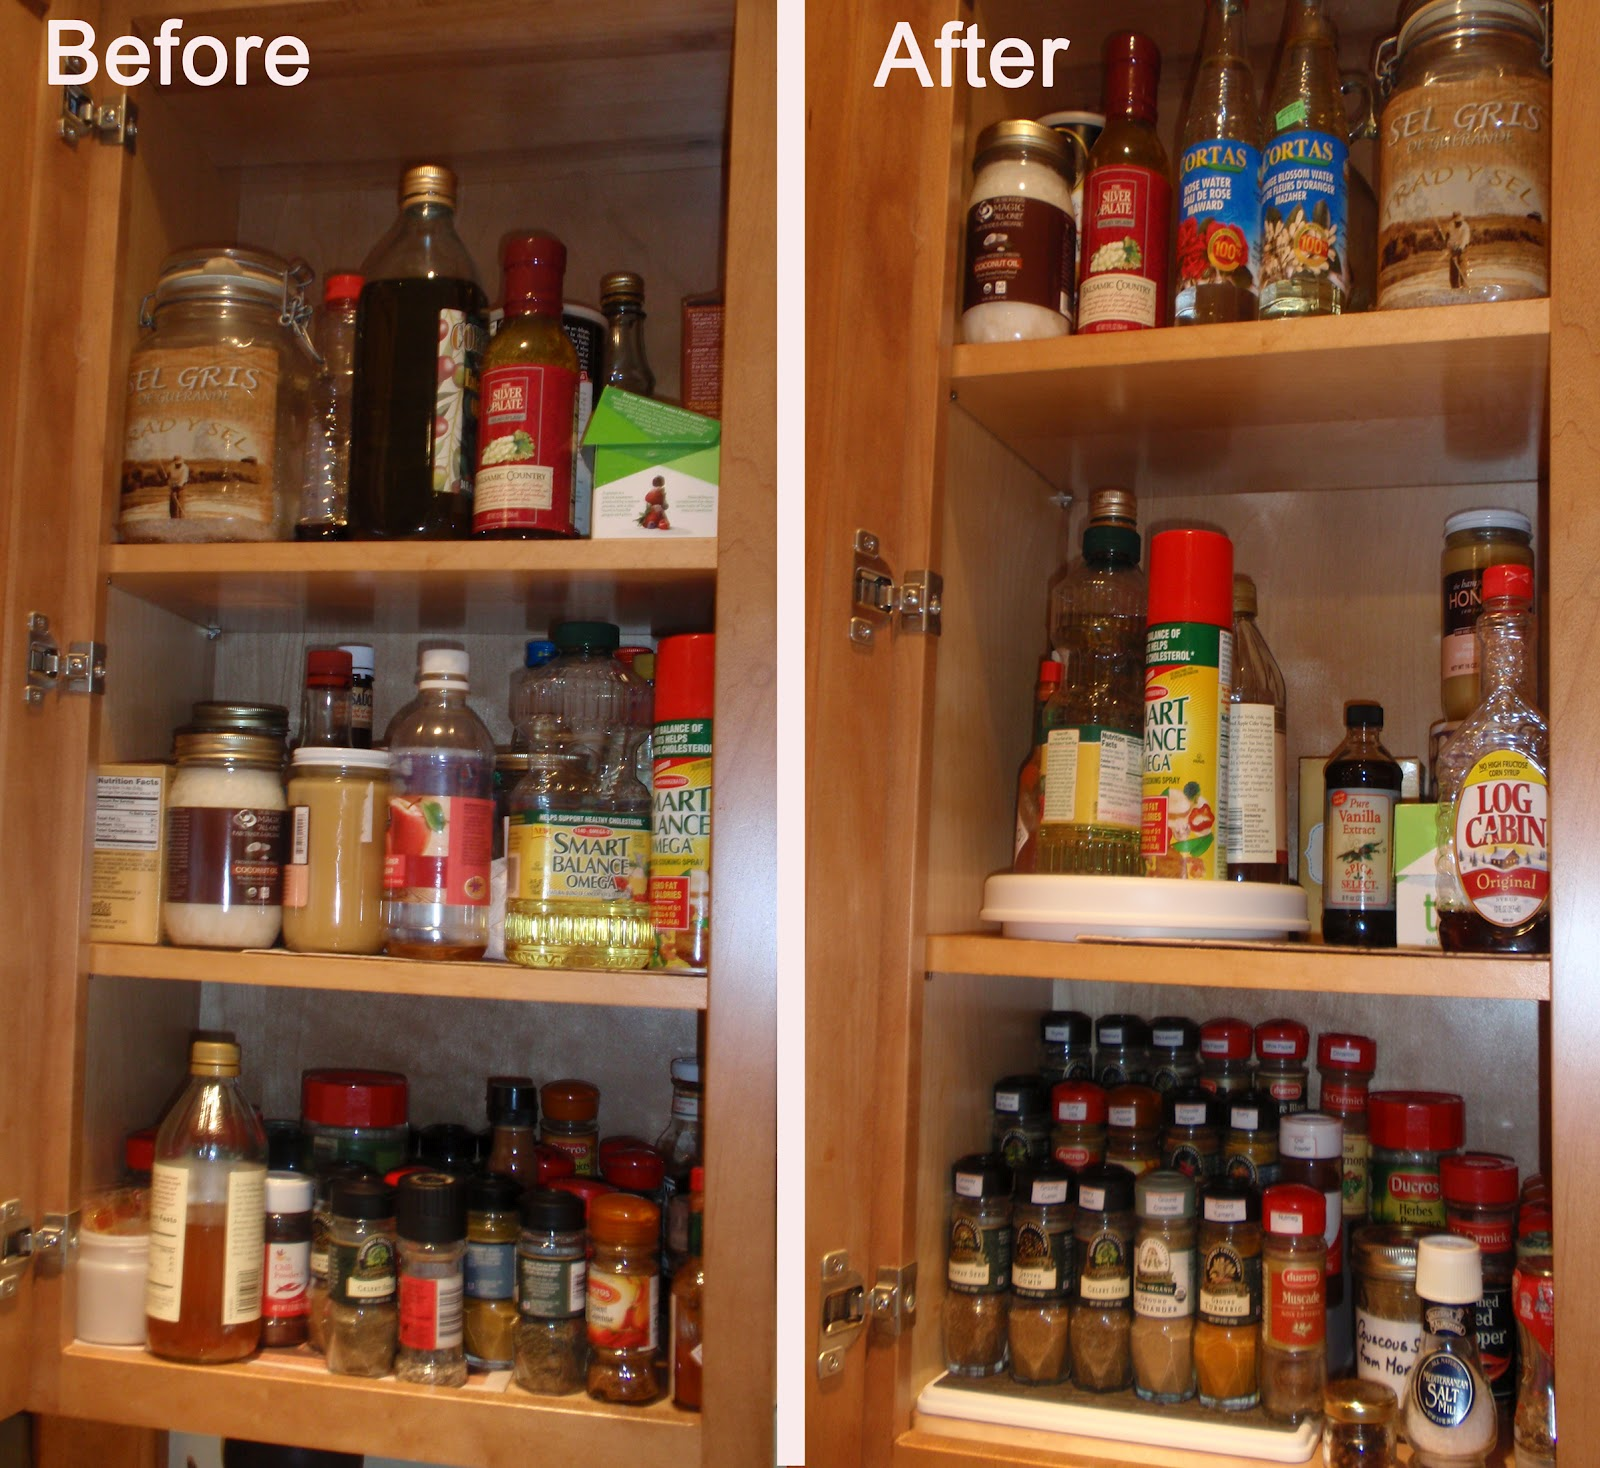 Kitchen Storage And Organization: My Great Challenge: Kitchen Cabinet Organization